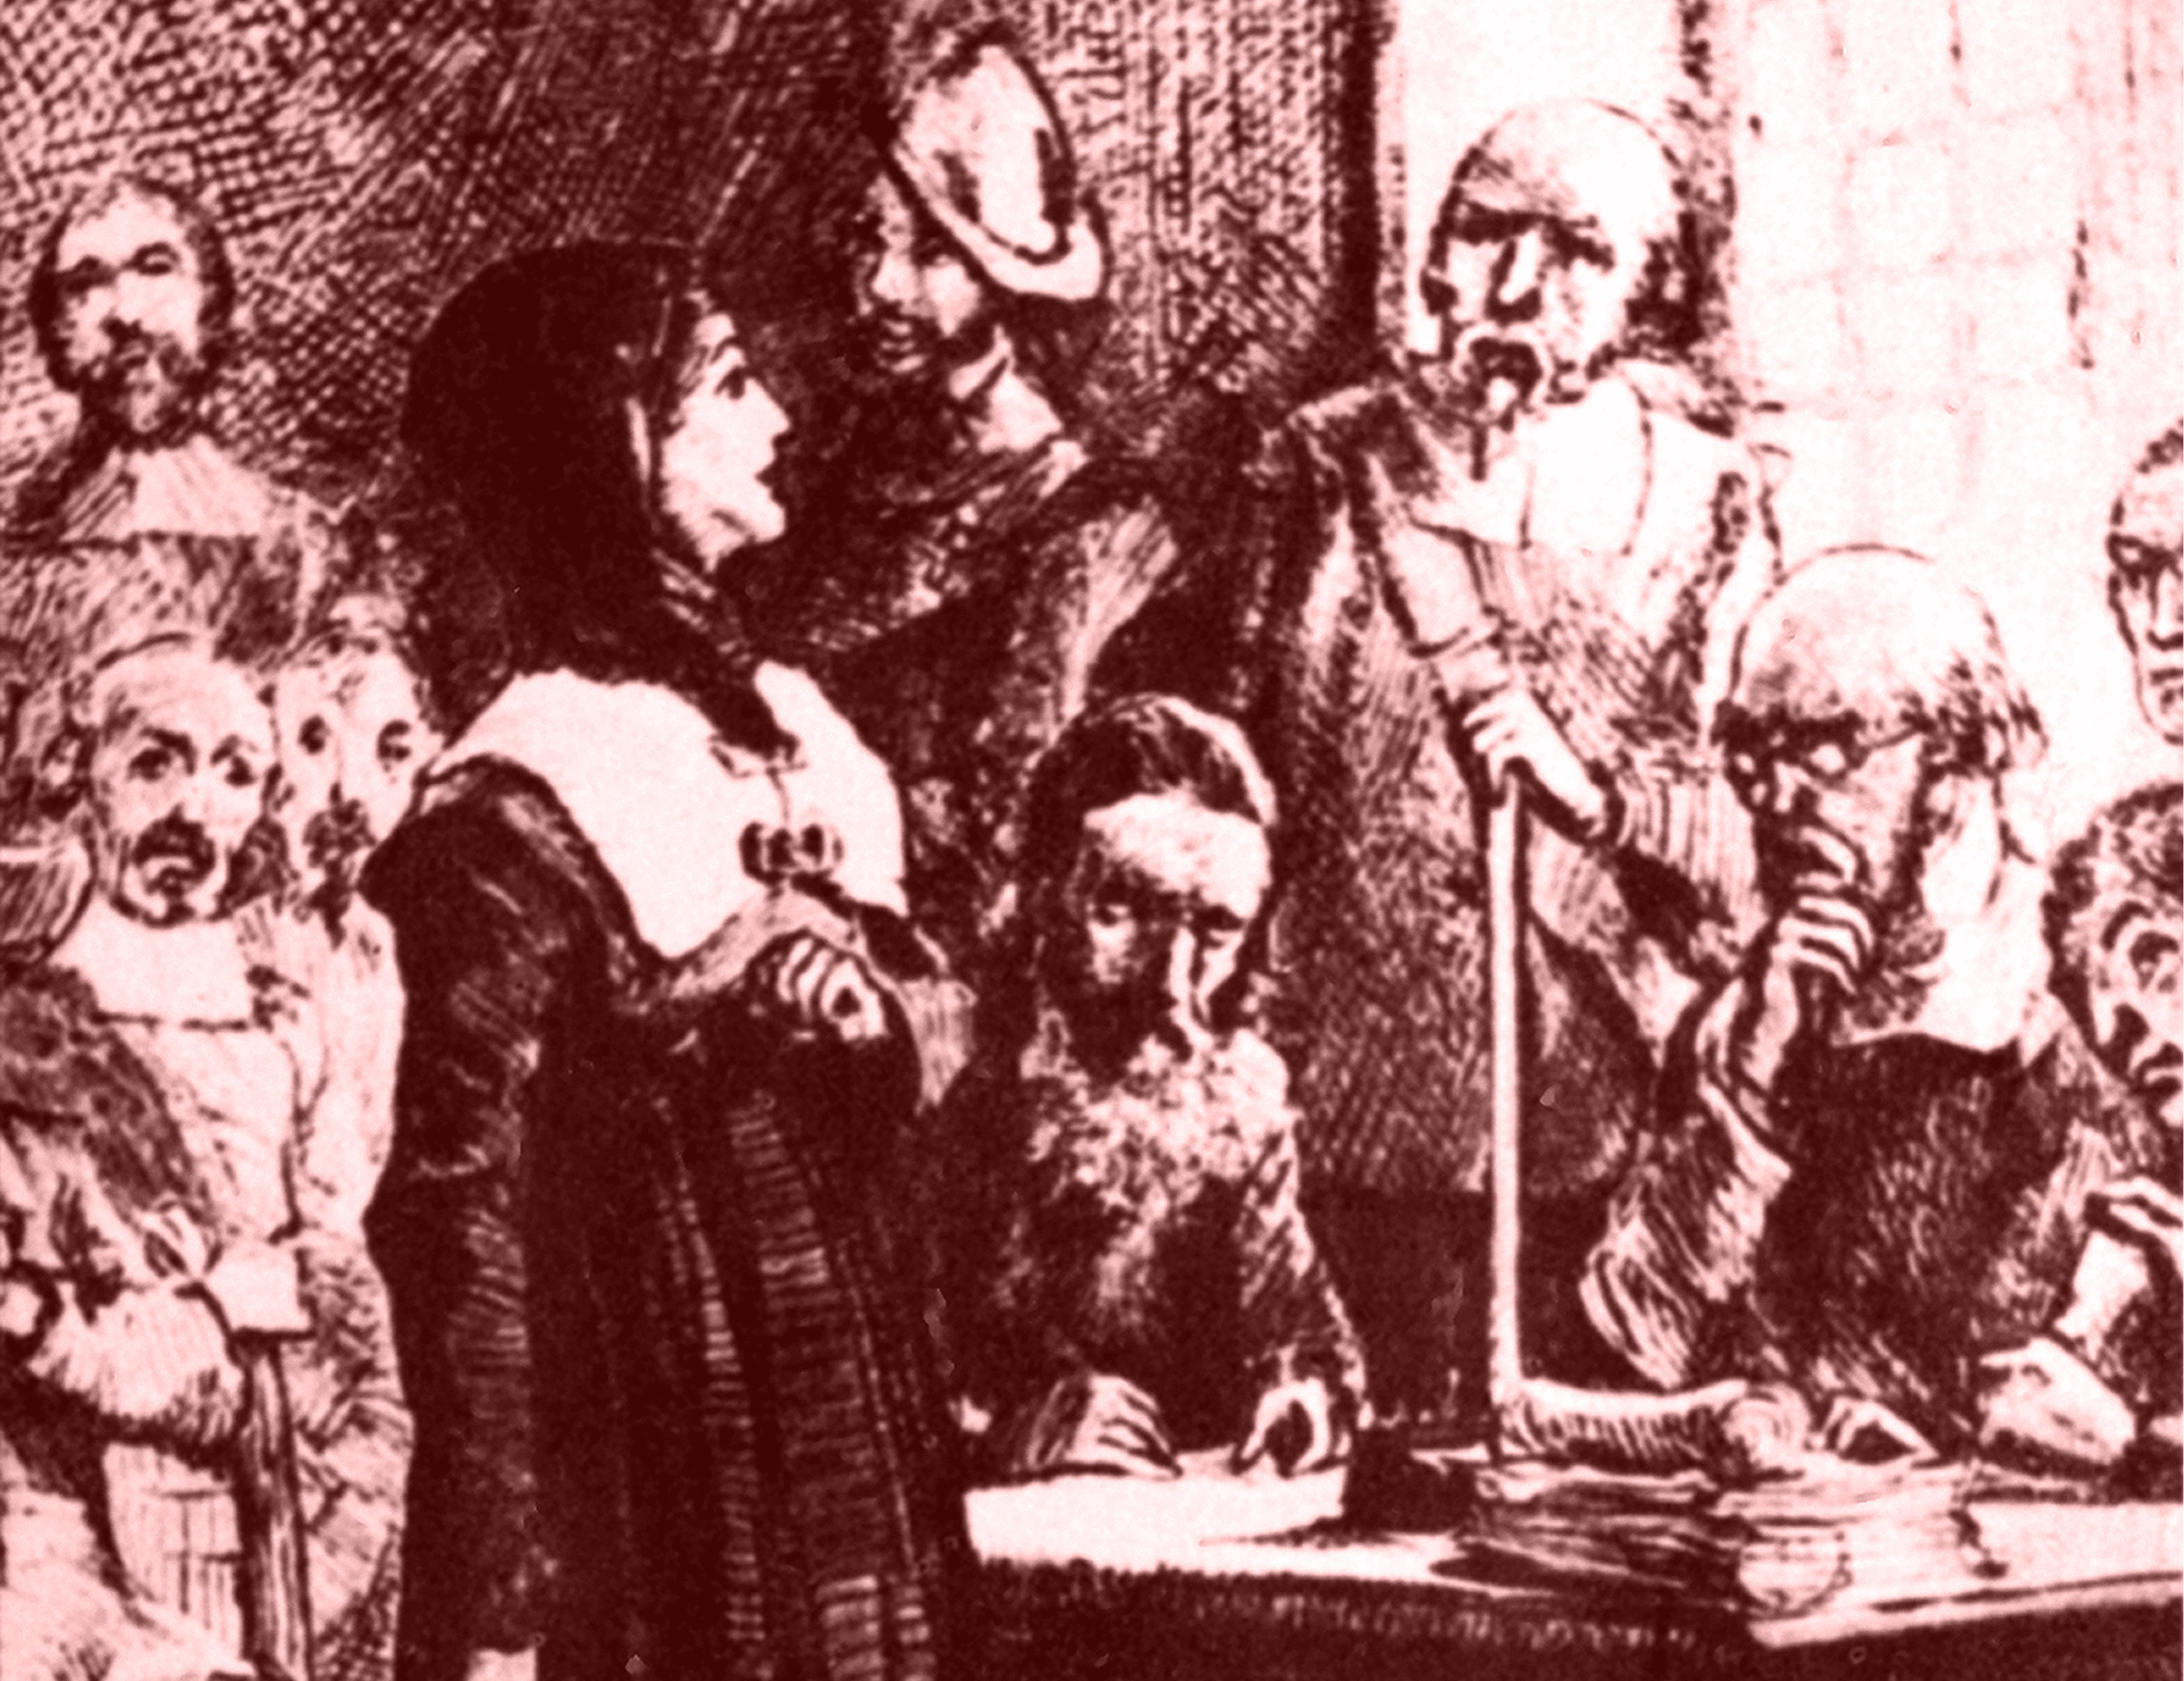 an analysis of the book the times and trials of anne hutchinson puritans divided Anne hutchinson (née marbury july 1591 - august 1643) was a puritan spiritual adviser, mother of 15, and an important participant in the antinomian controversy which shook the infant massachusetts.